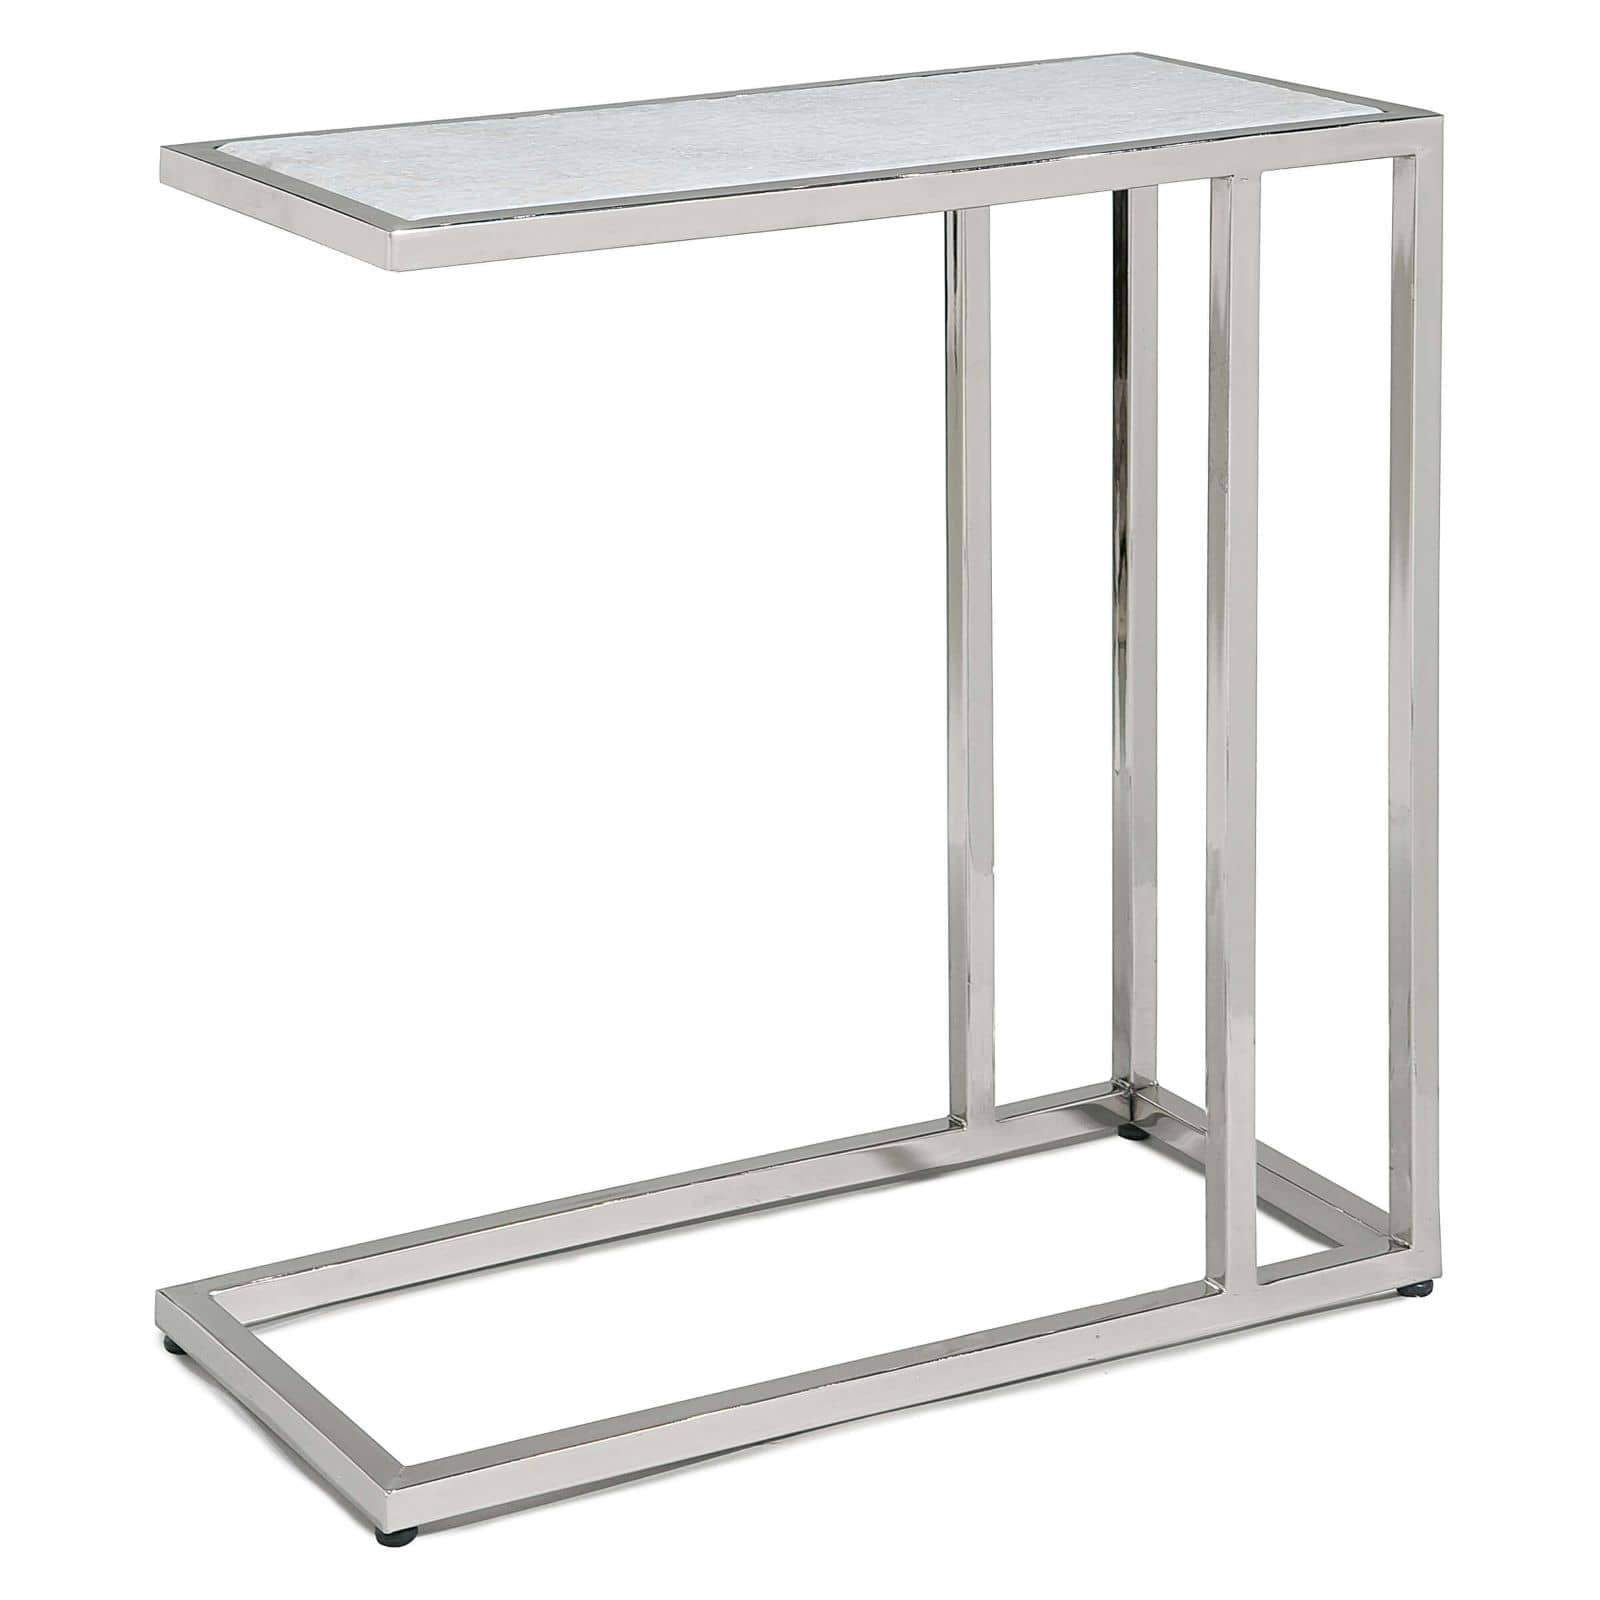 The Perfect Drink Table-$558.00